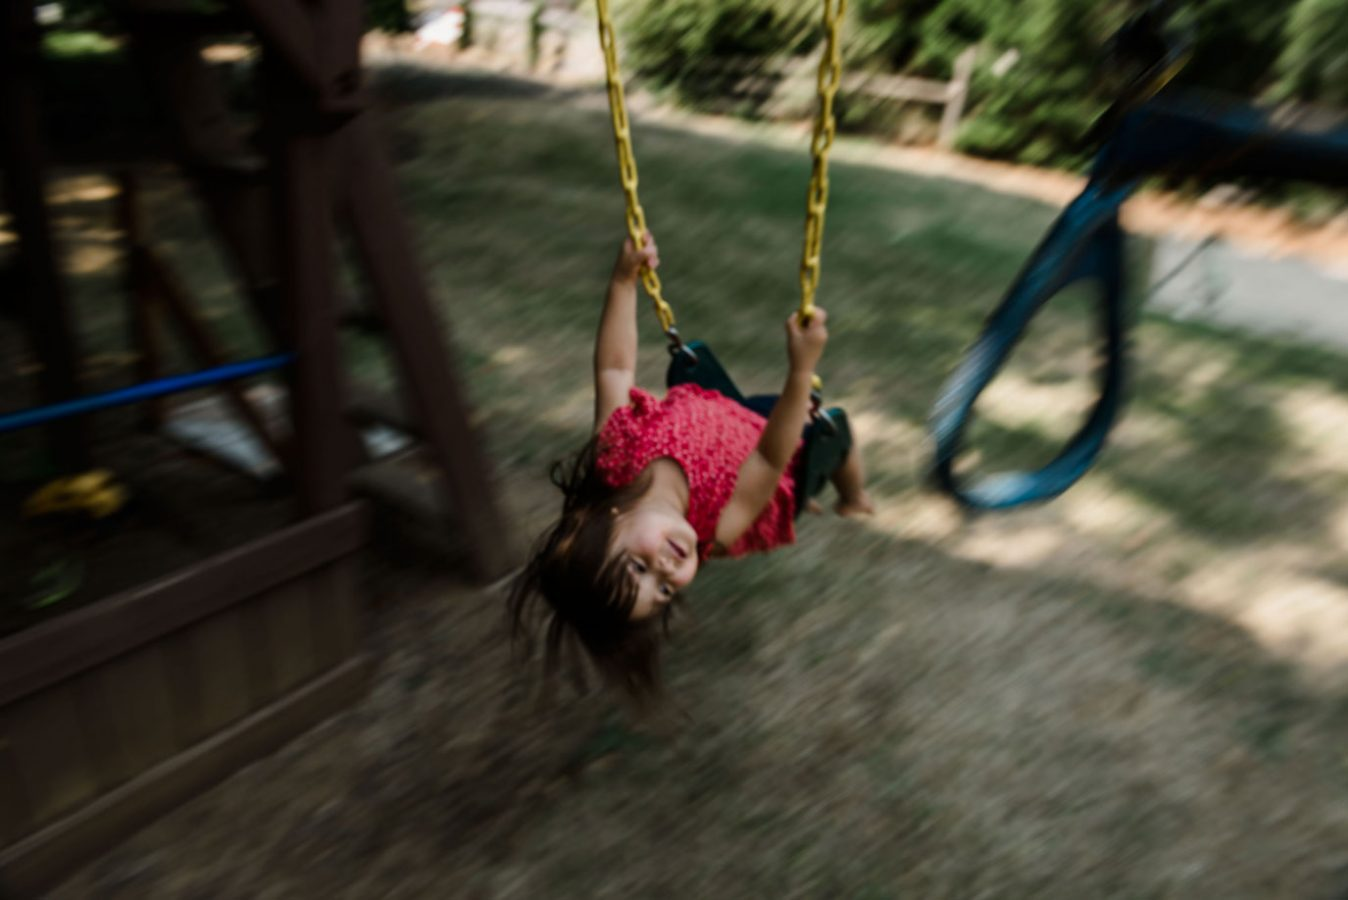 spokane-photographer-swing-2